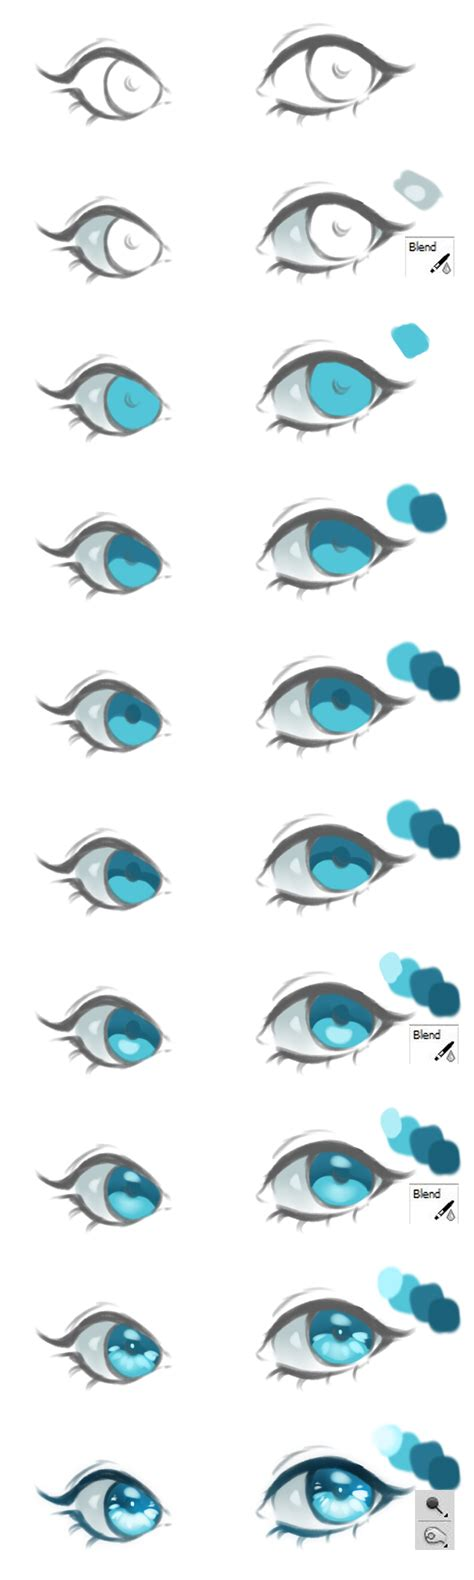 anime eyes tutorial anime eyes coloring tutorial vol 2 by haloblabla on deviantart